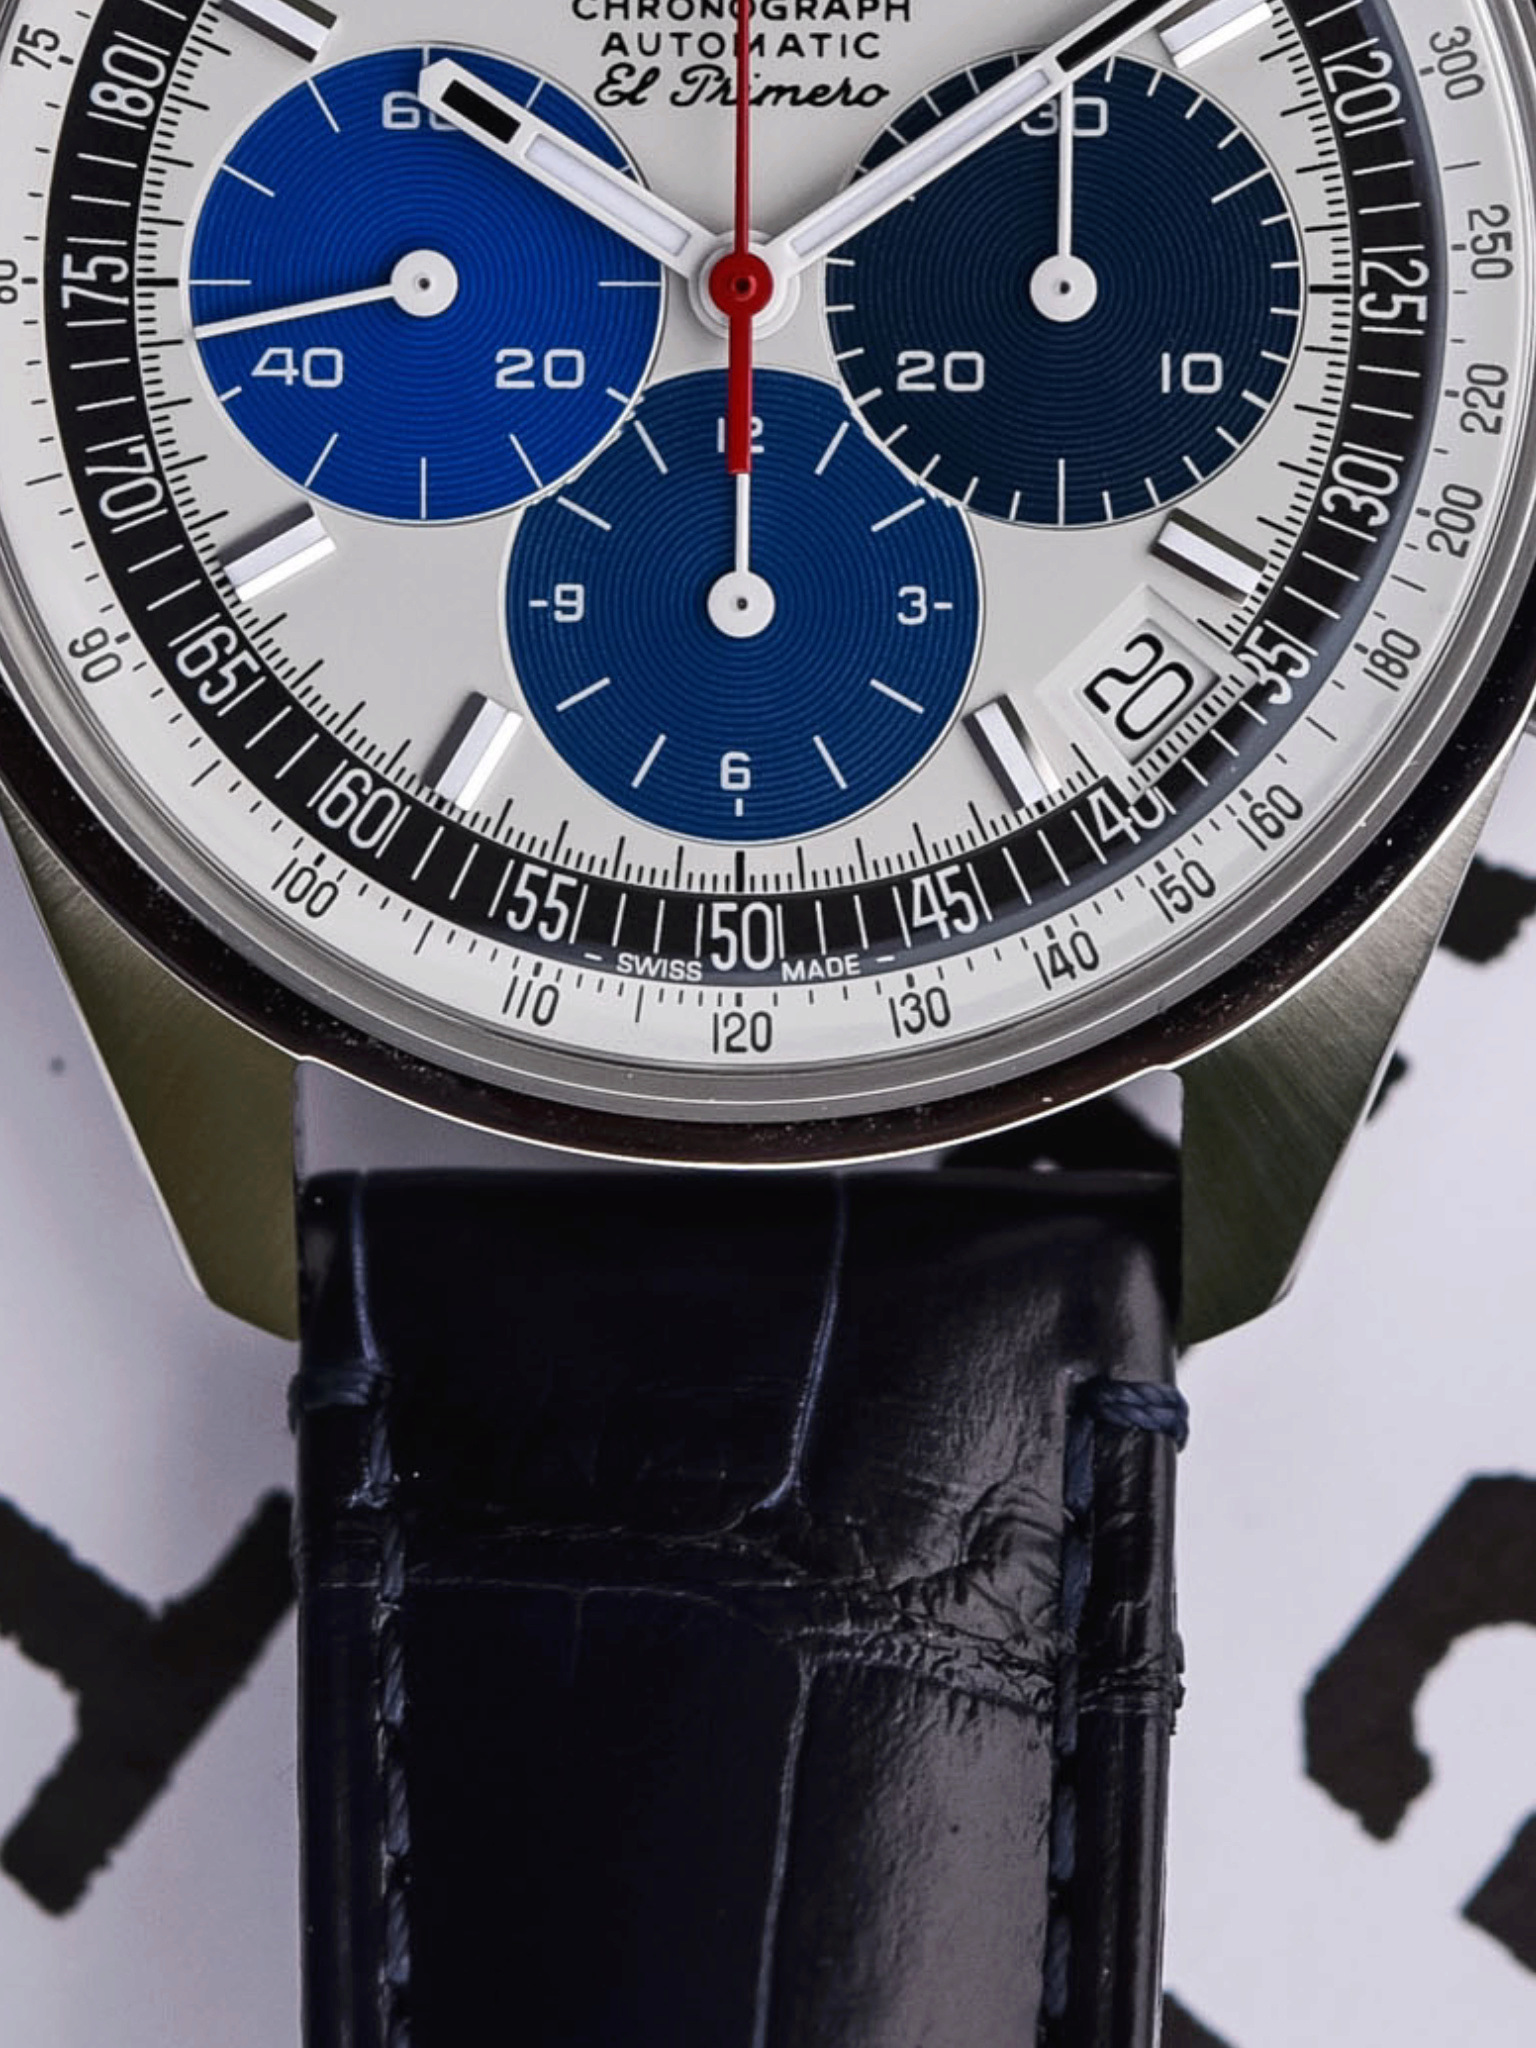 Zenith Chronomaster A386 Revival - édition manufacture - Page 2 Img_4614